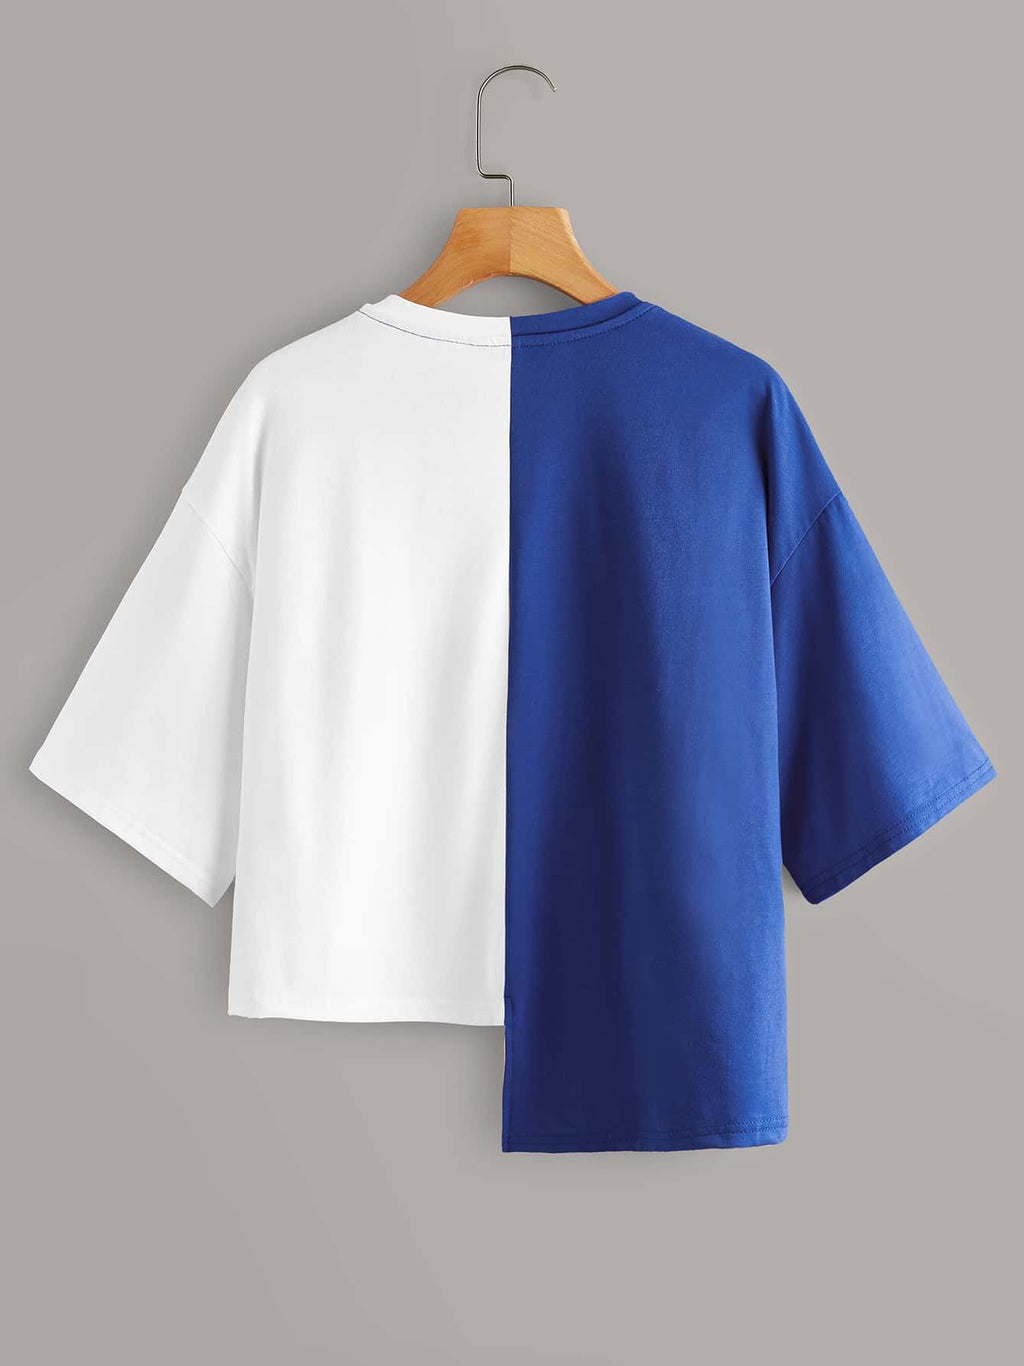 Colorblock Namdoze Graphic Step-Hem Tee